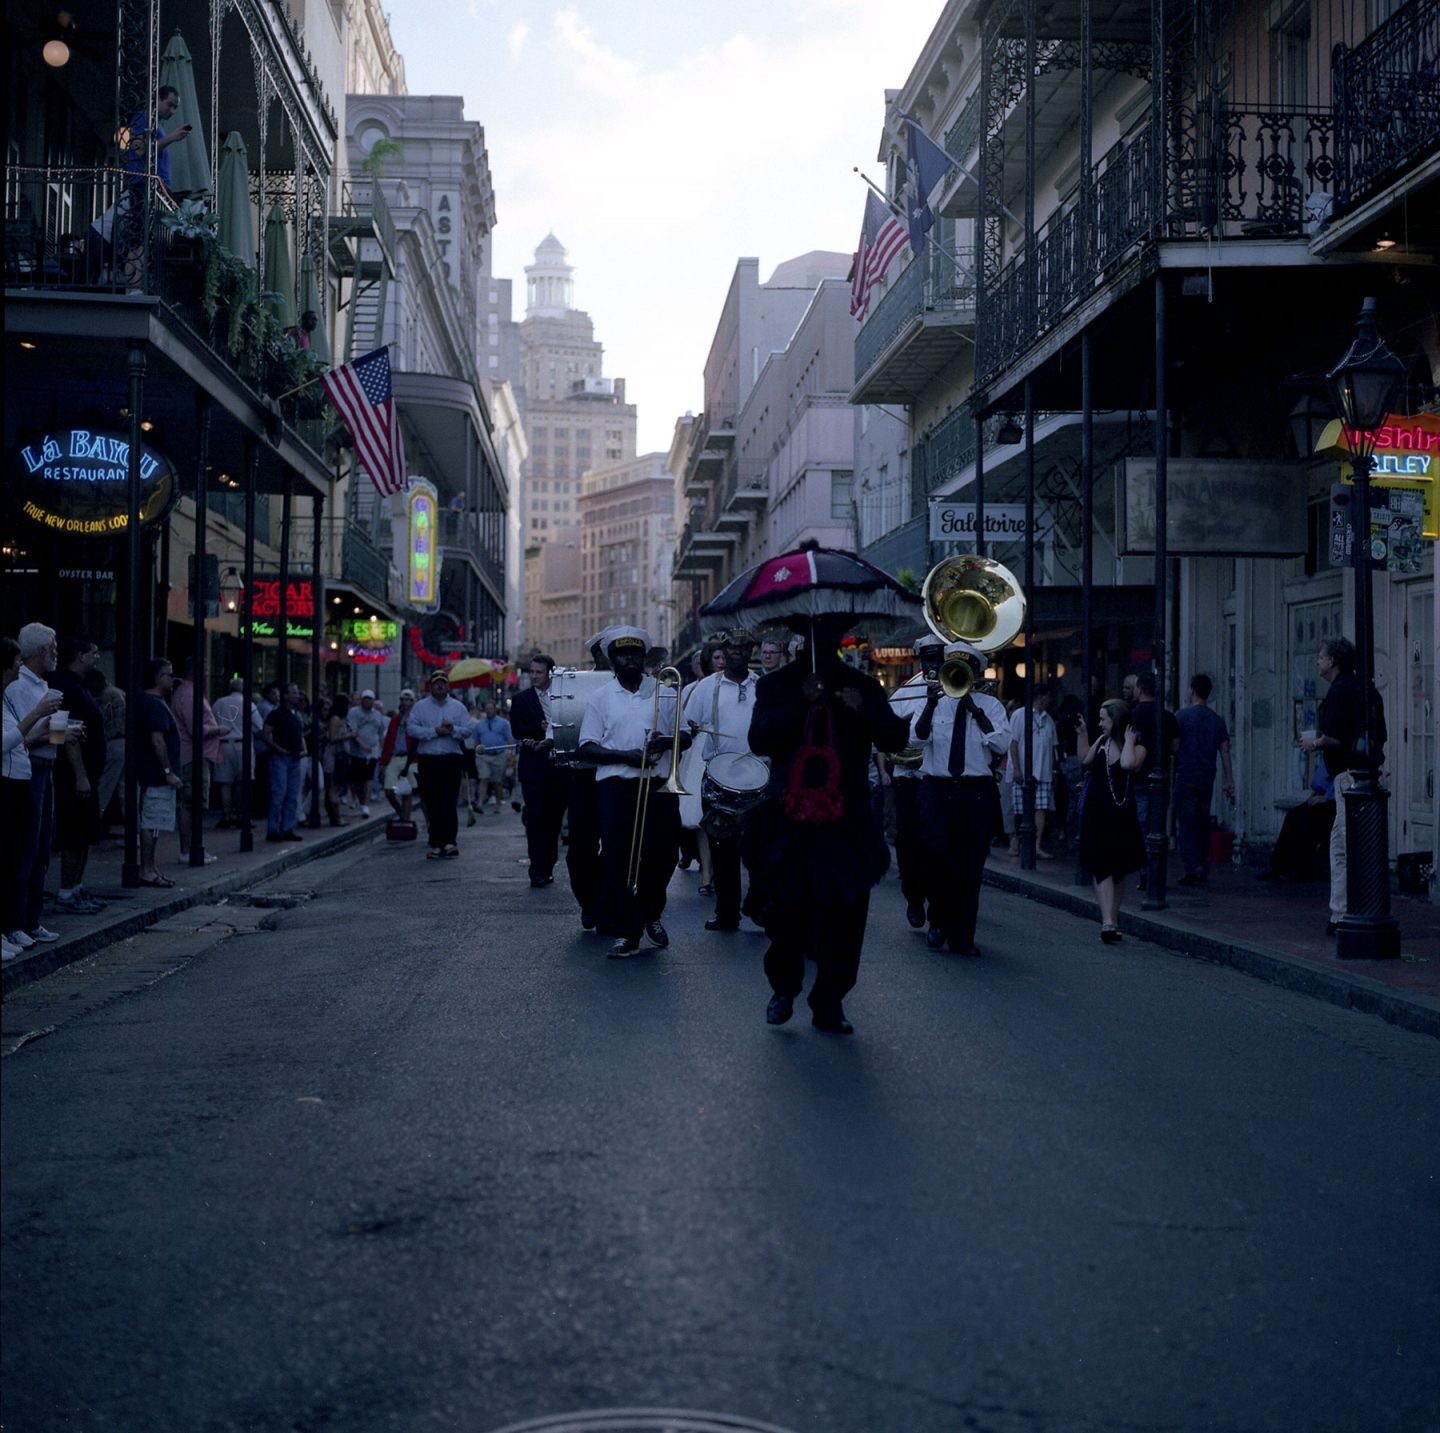 New Orleans Sessions – Hasselblad 500cm Medium Format film